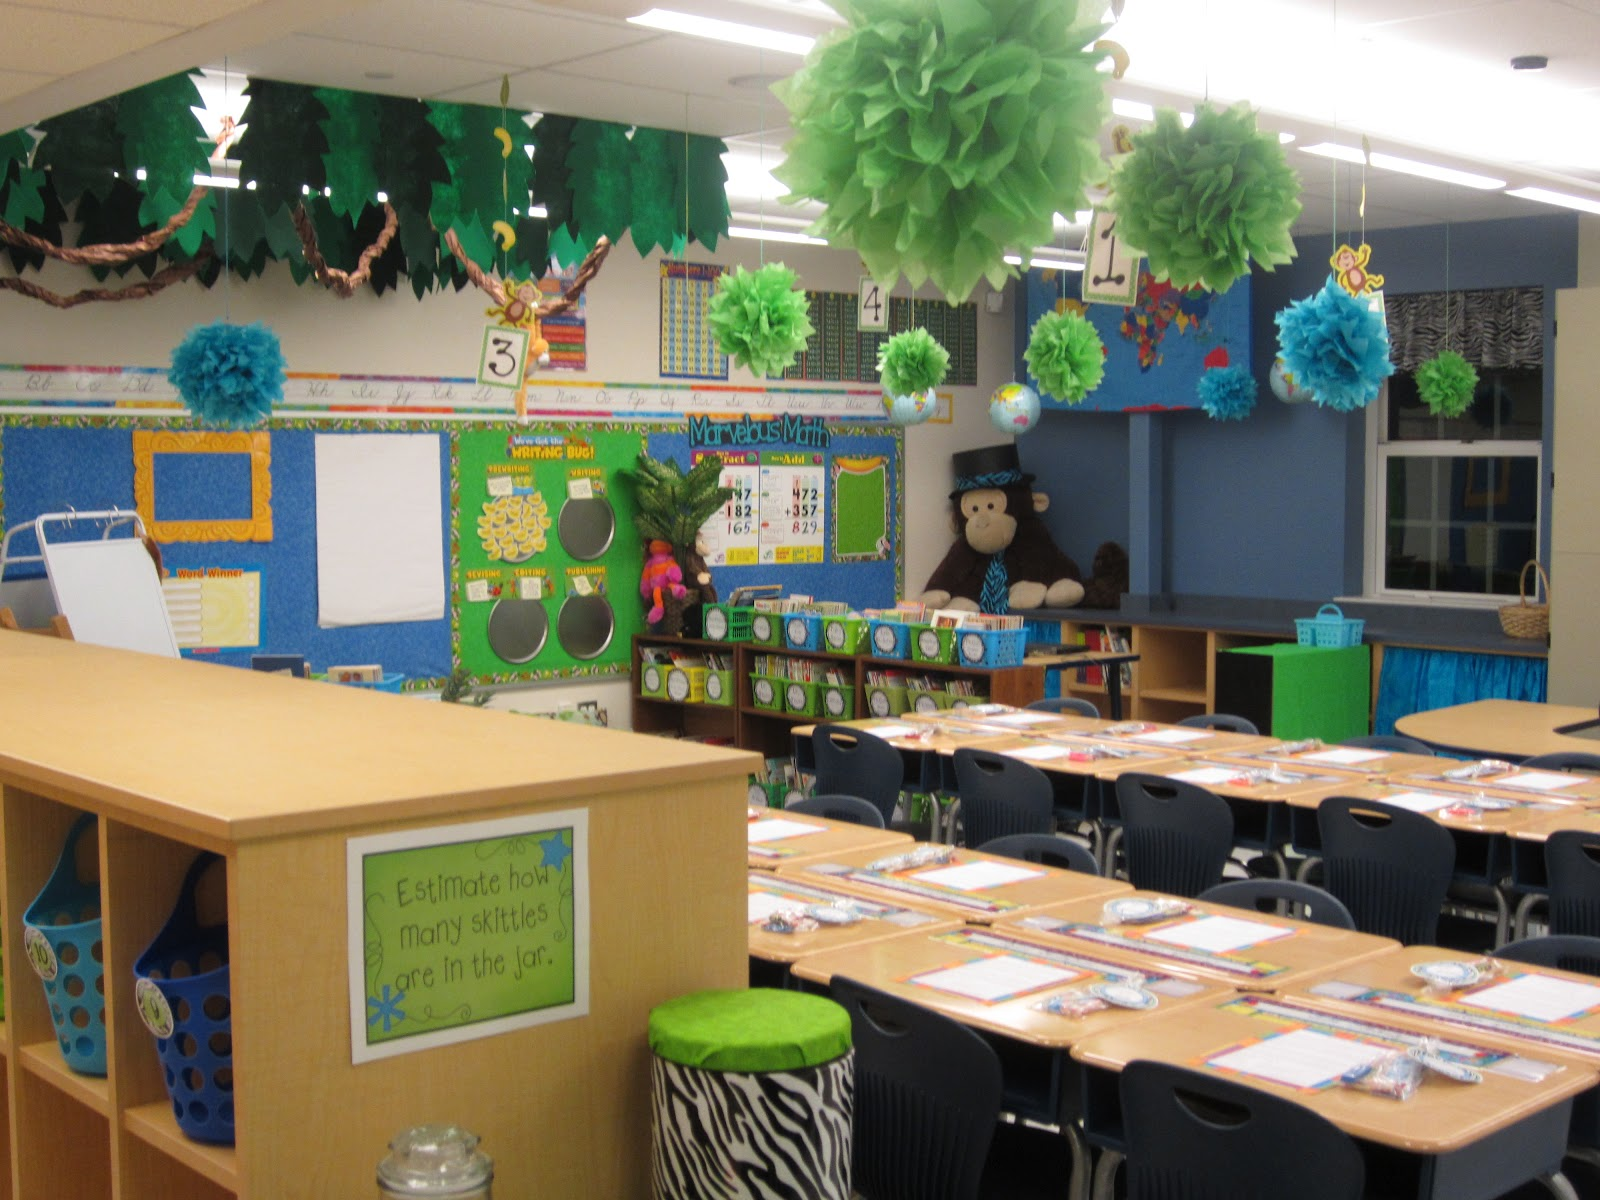 Classroom Design 3rd Grade ~ The creative chalkboard classroom tour pictures galore